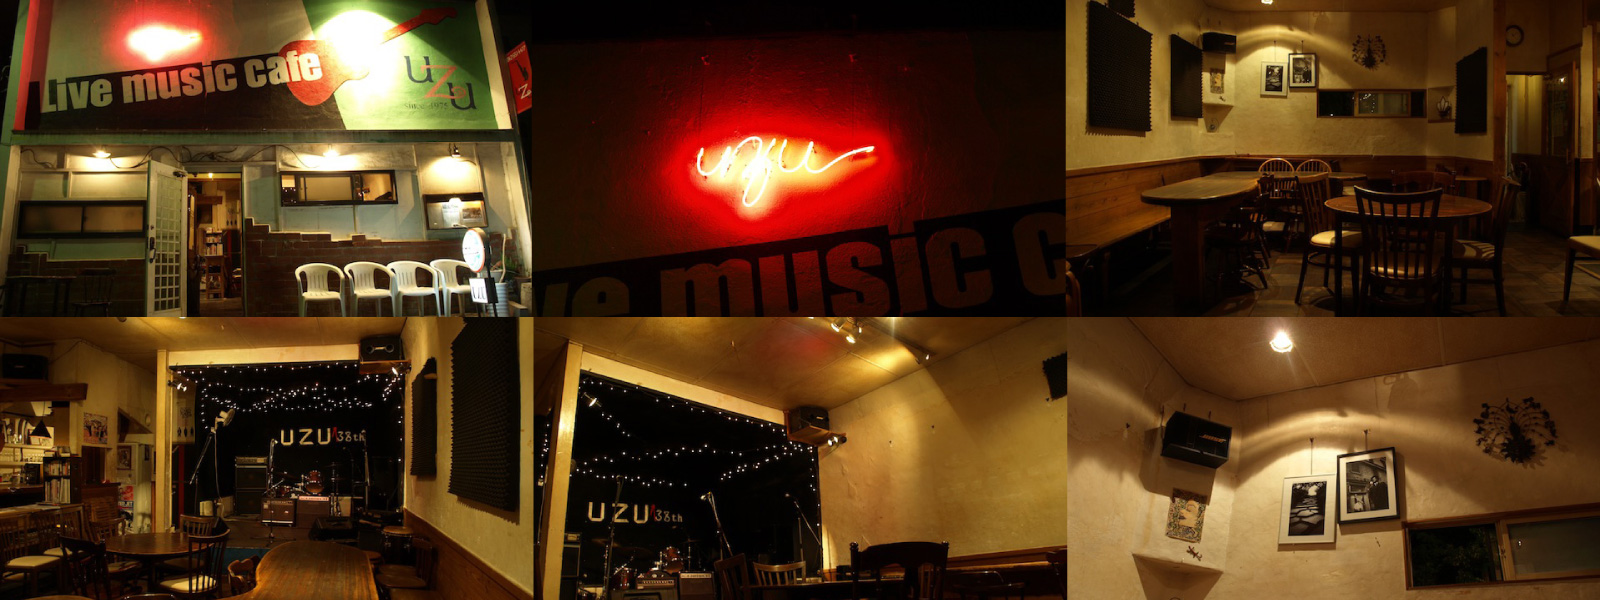 MUSIC CAFE UZU / 福生UZU